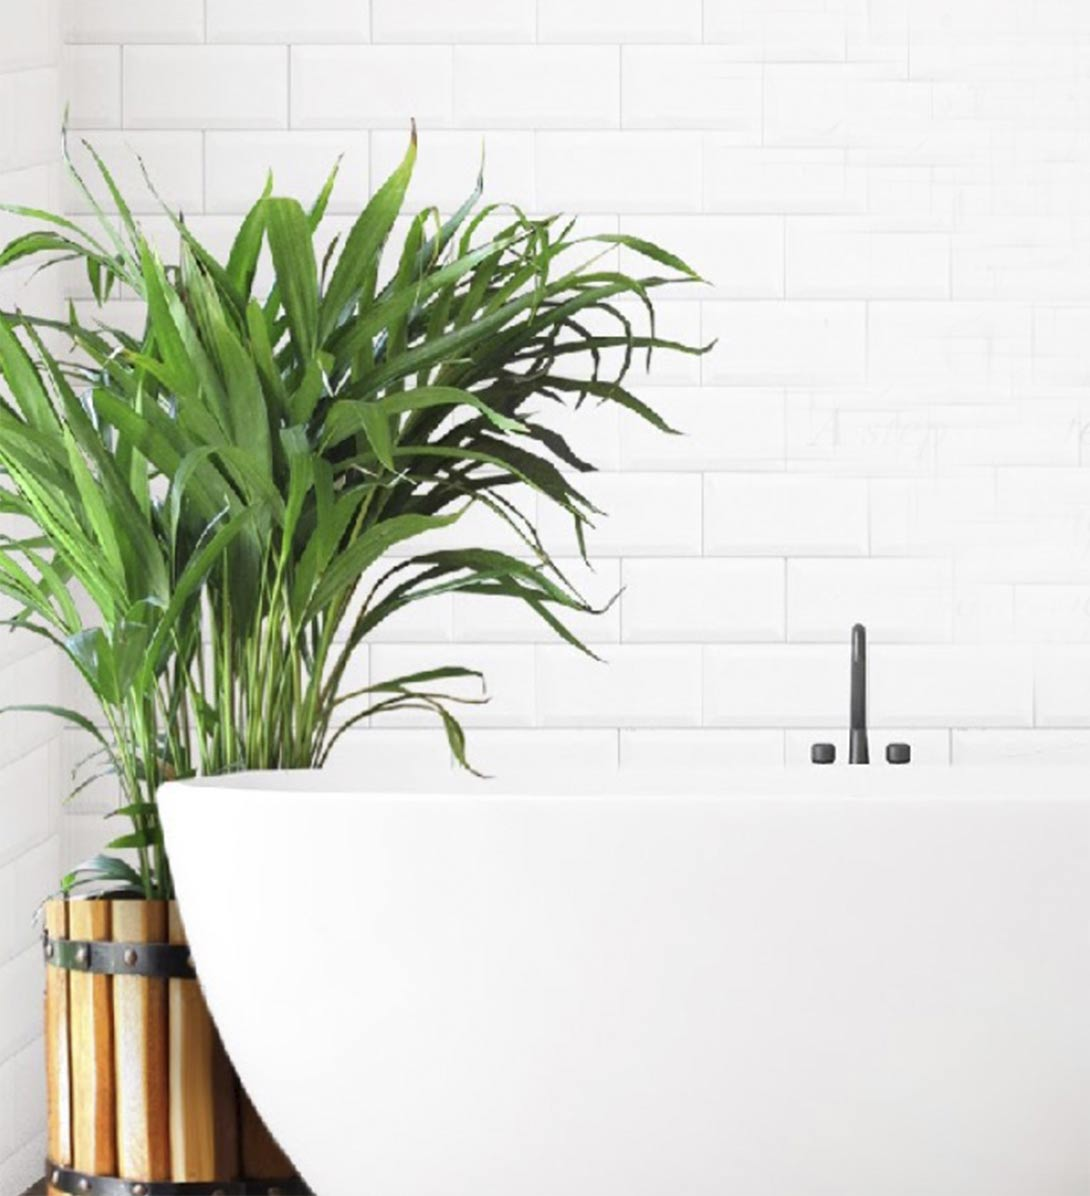 Calming photo of bathtub and plant